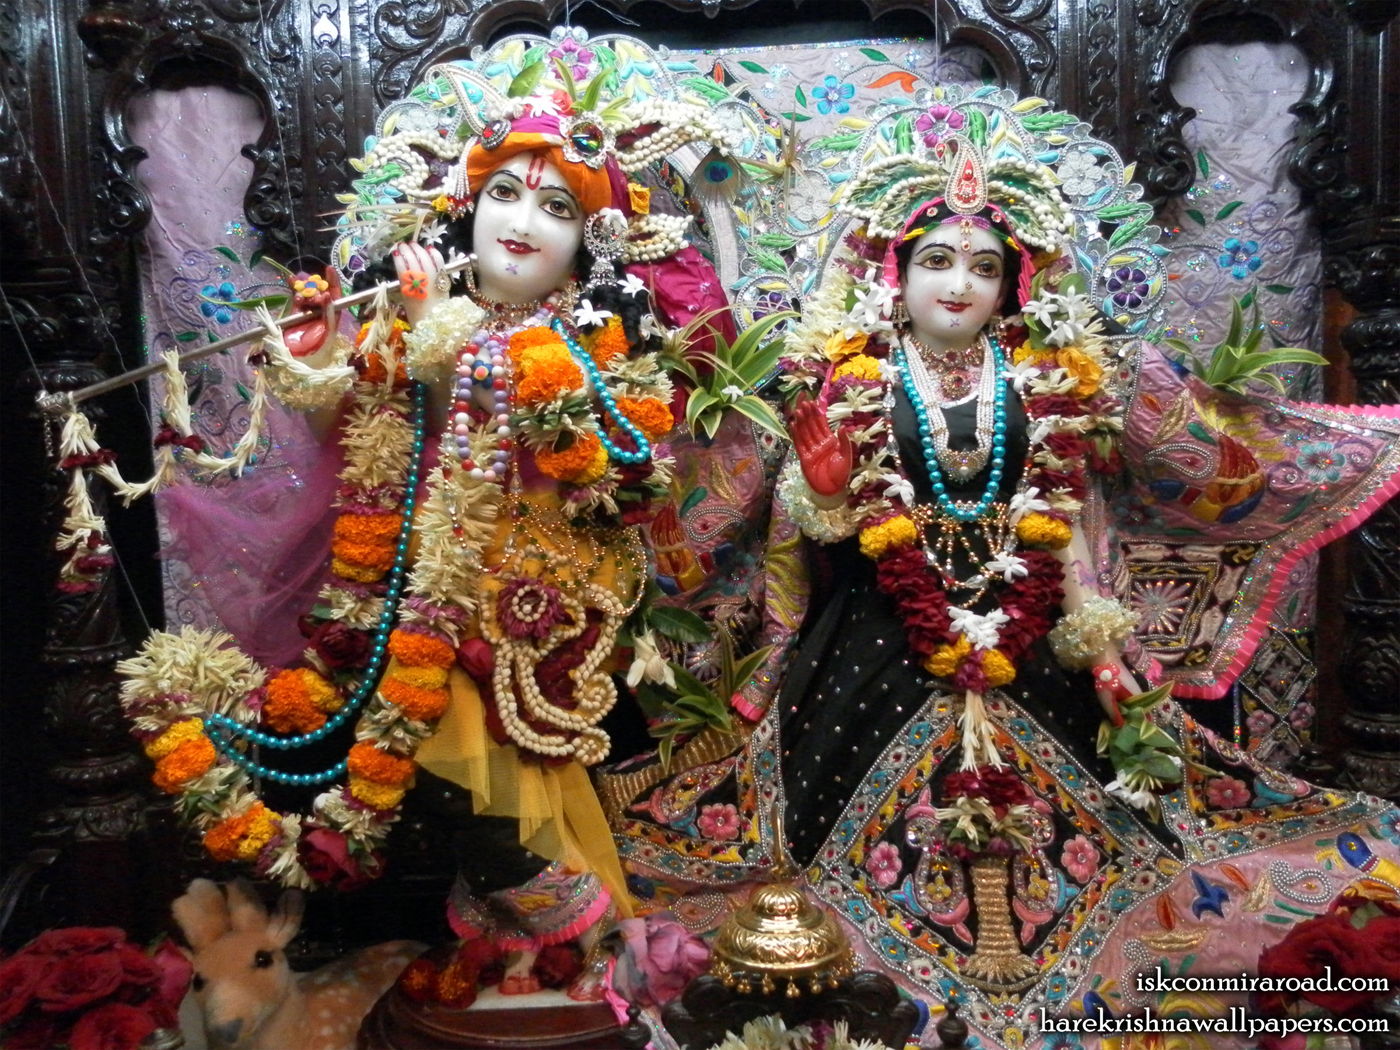 Sri Sri Radha Giridhari Wallpaper (009) Size 1400x1050 Download